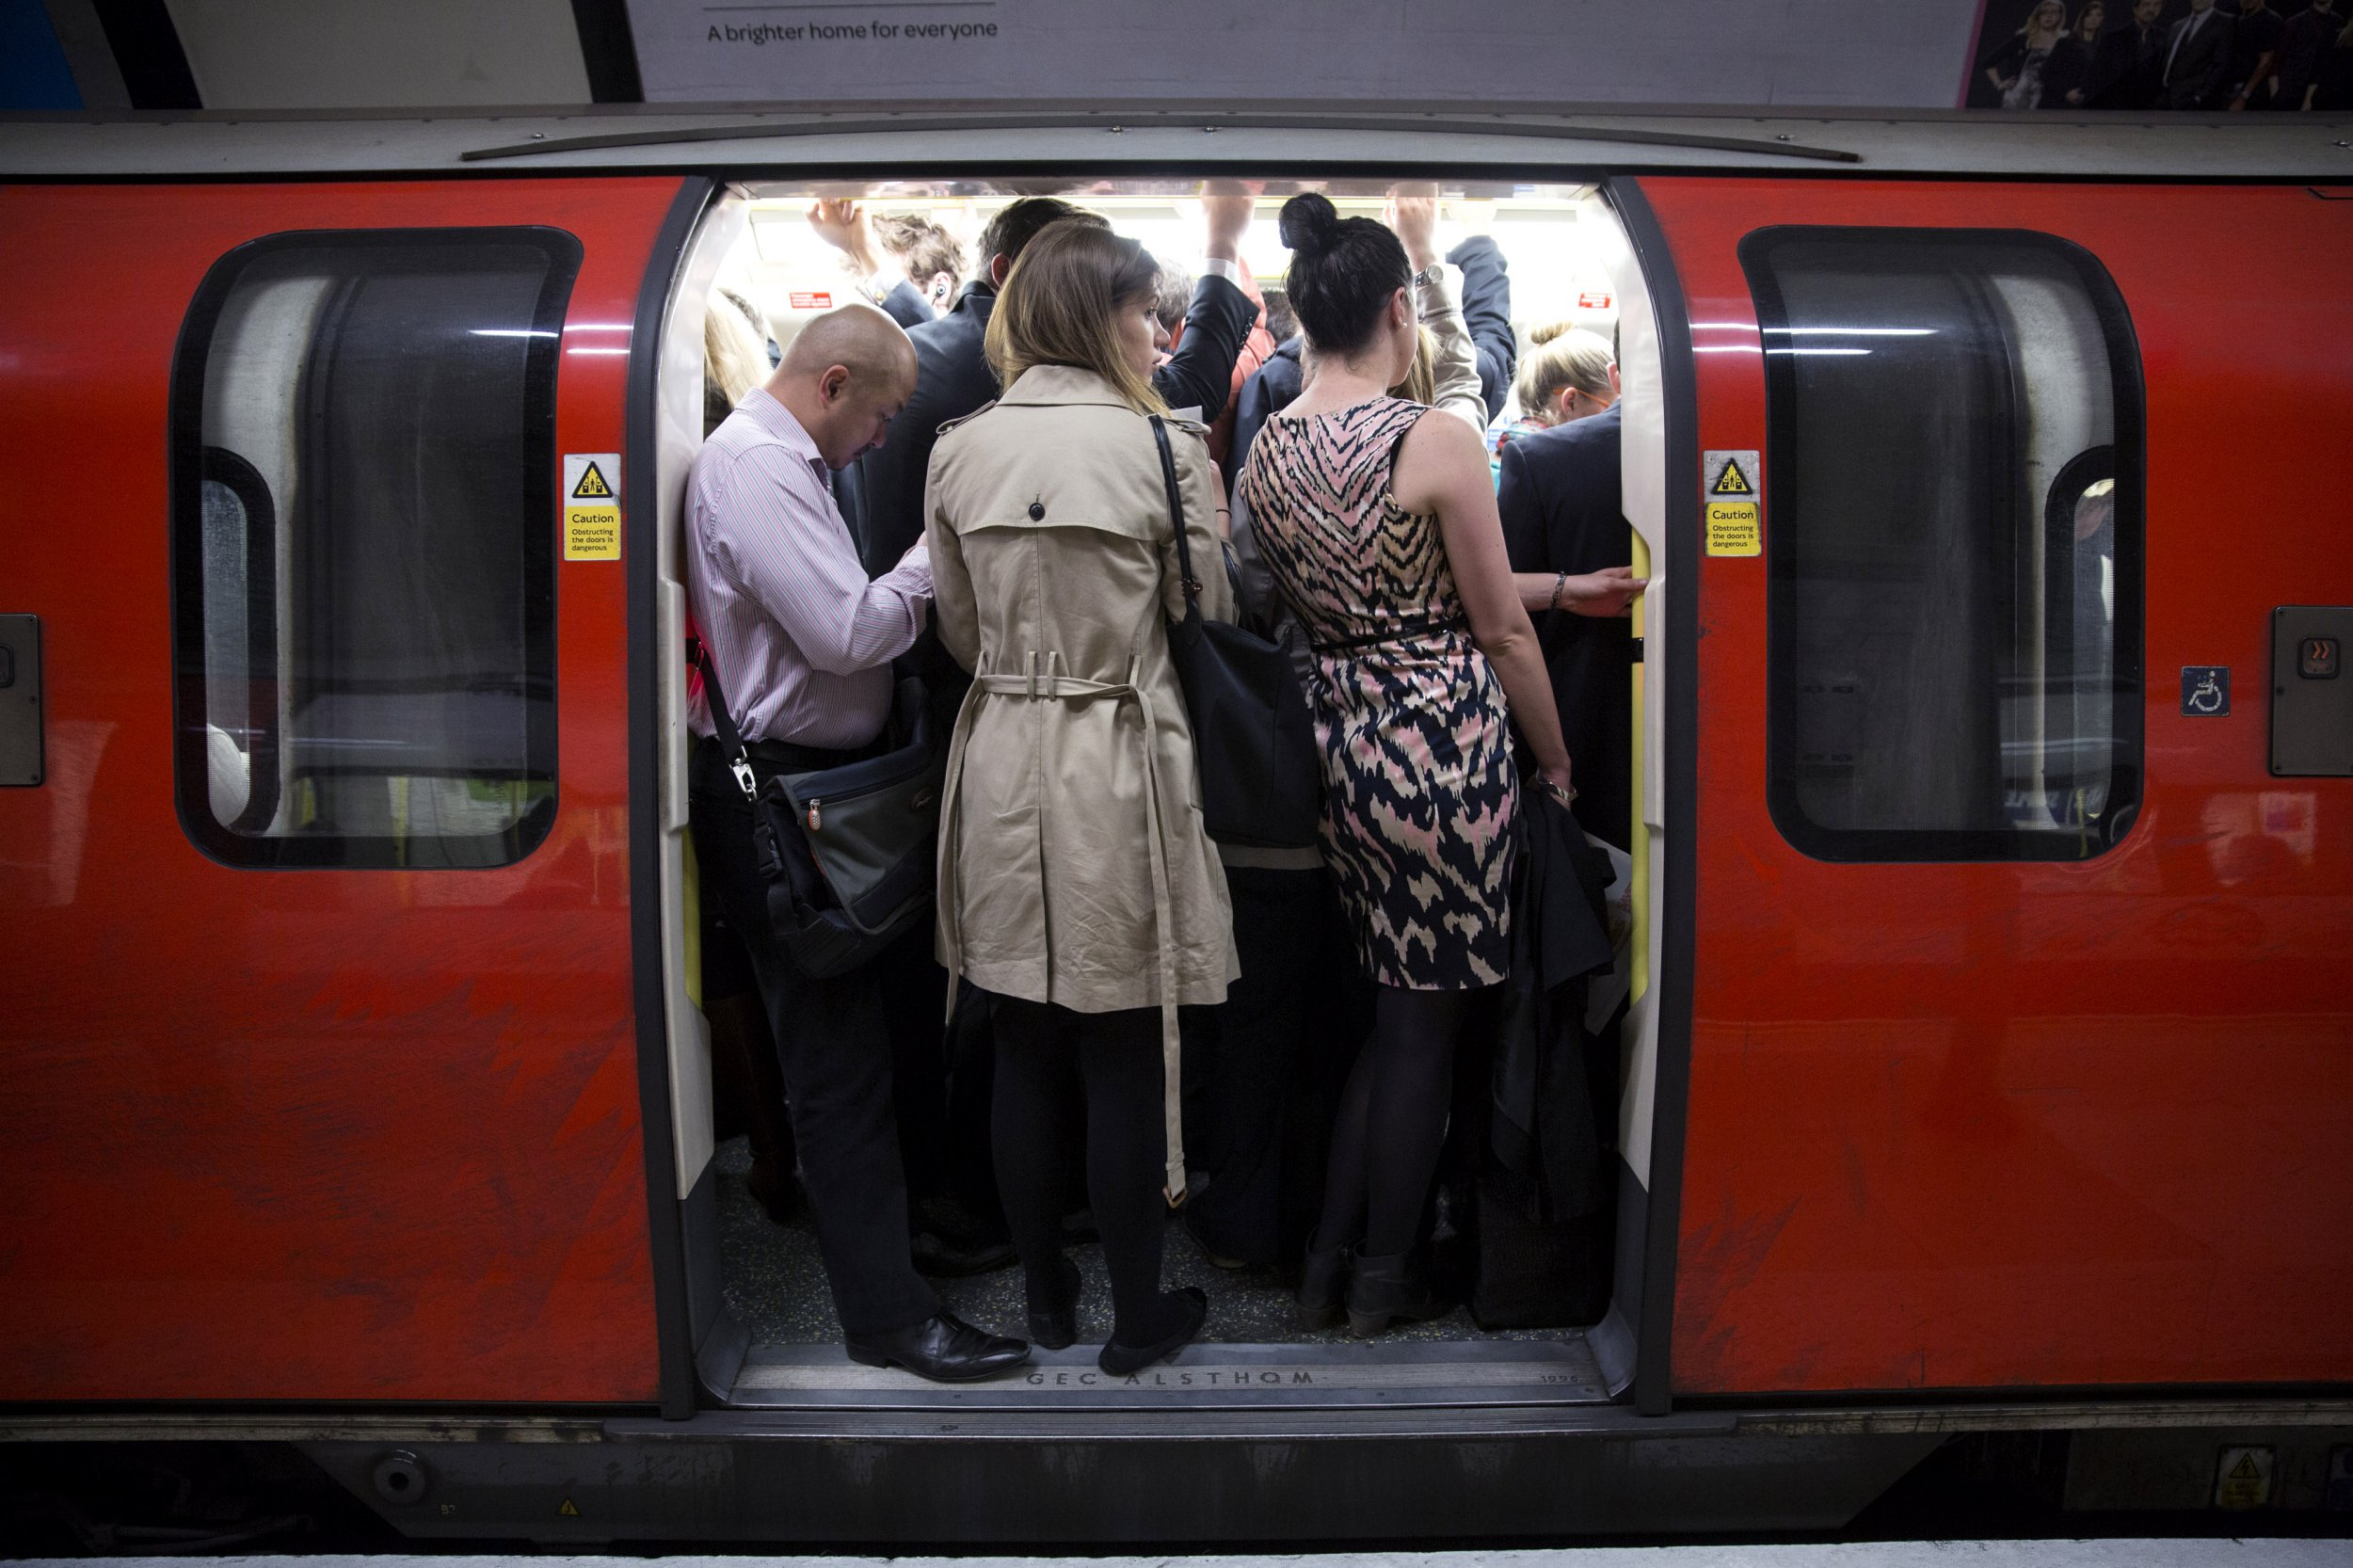 LONDON, ENGLAND - APRIL 29: Commuters travel on the Northern Line of the London Underground which is running a limited service due to industrial action on April 29, 2014 in London, England. At 9pm last night members of the Rail, Maritime and Transport (RMT) Union commenced a 48 hour strike on the London Underground over plans to close all ticket offices with the loss of nearly 1000 jobs. (Photo by Oli Scarff/Getty Images)